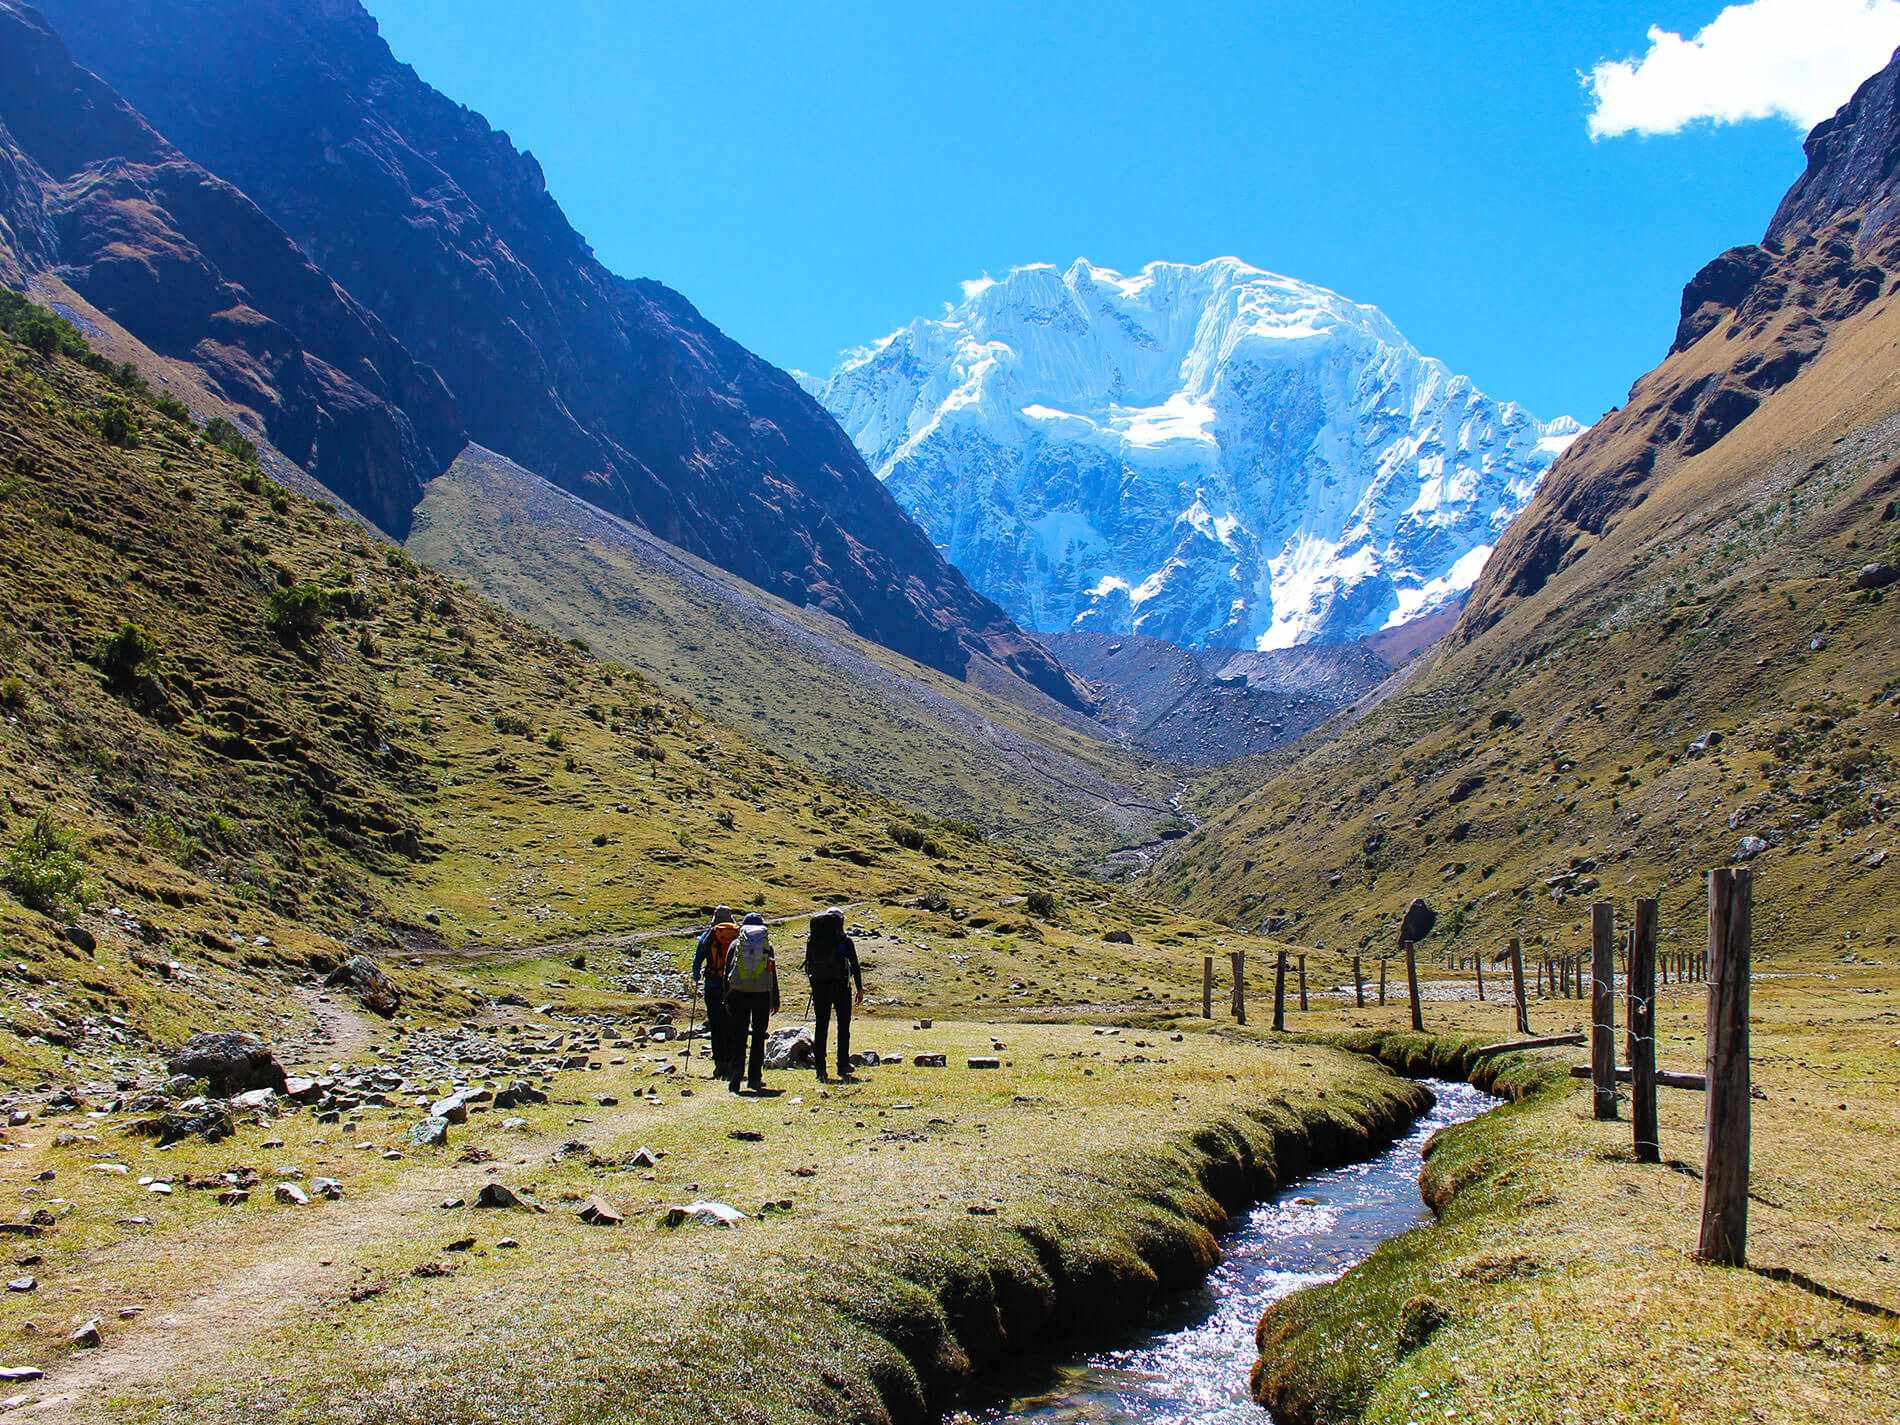 The amazing view of Mount Salkantay on salkantay trail